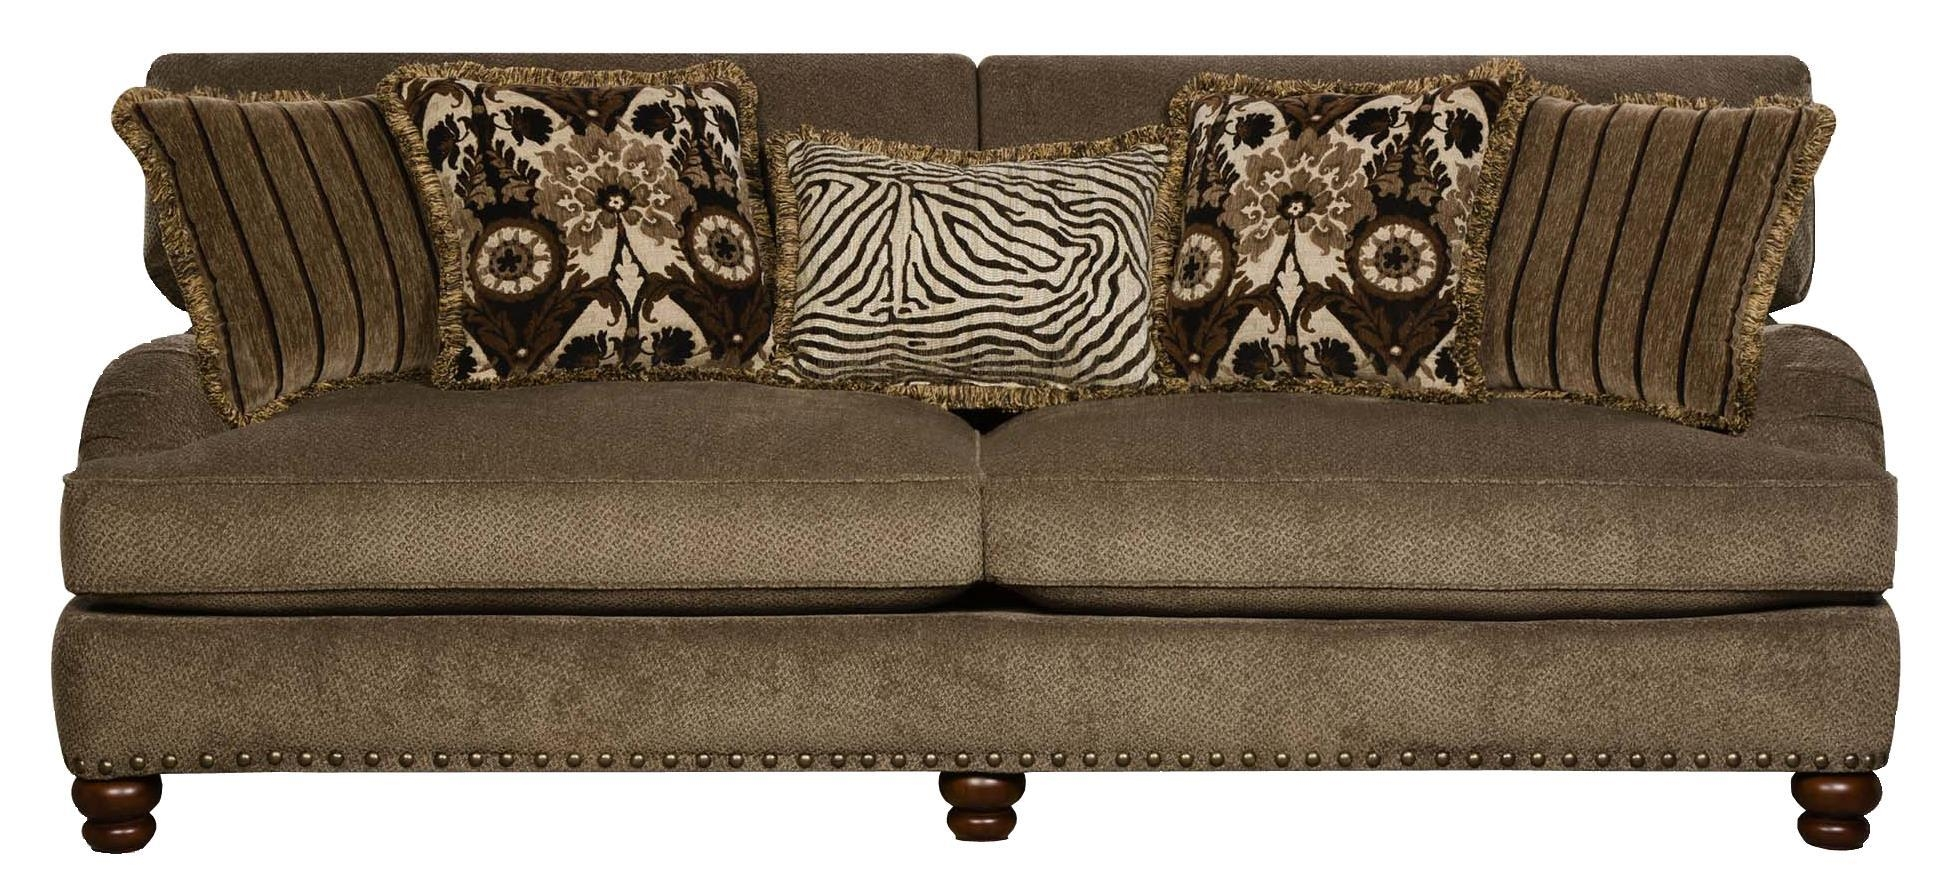 Corinthian Prodigy Prodigy Mink Sofa – Great American Home Store Throughout Corinthian Sofas (View 5 of 20)